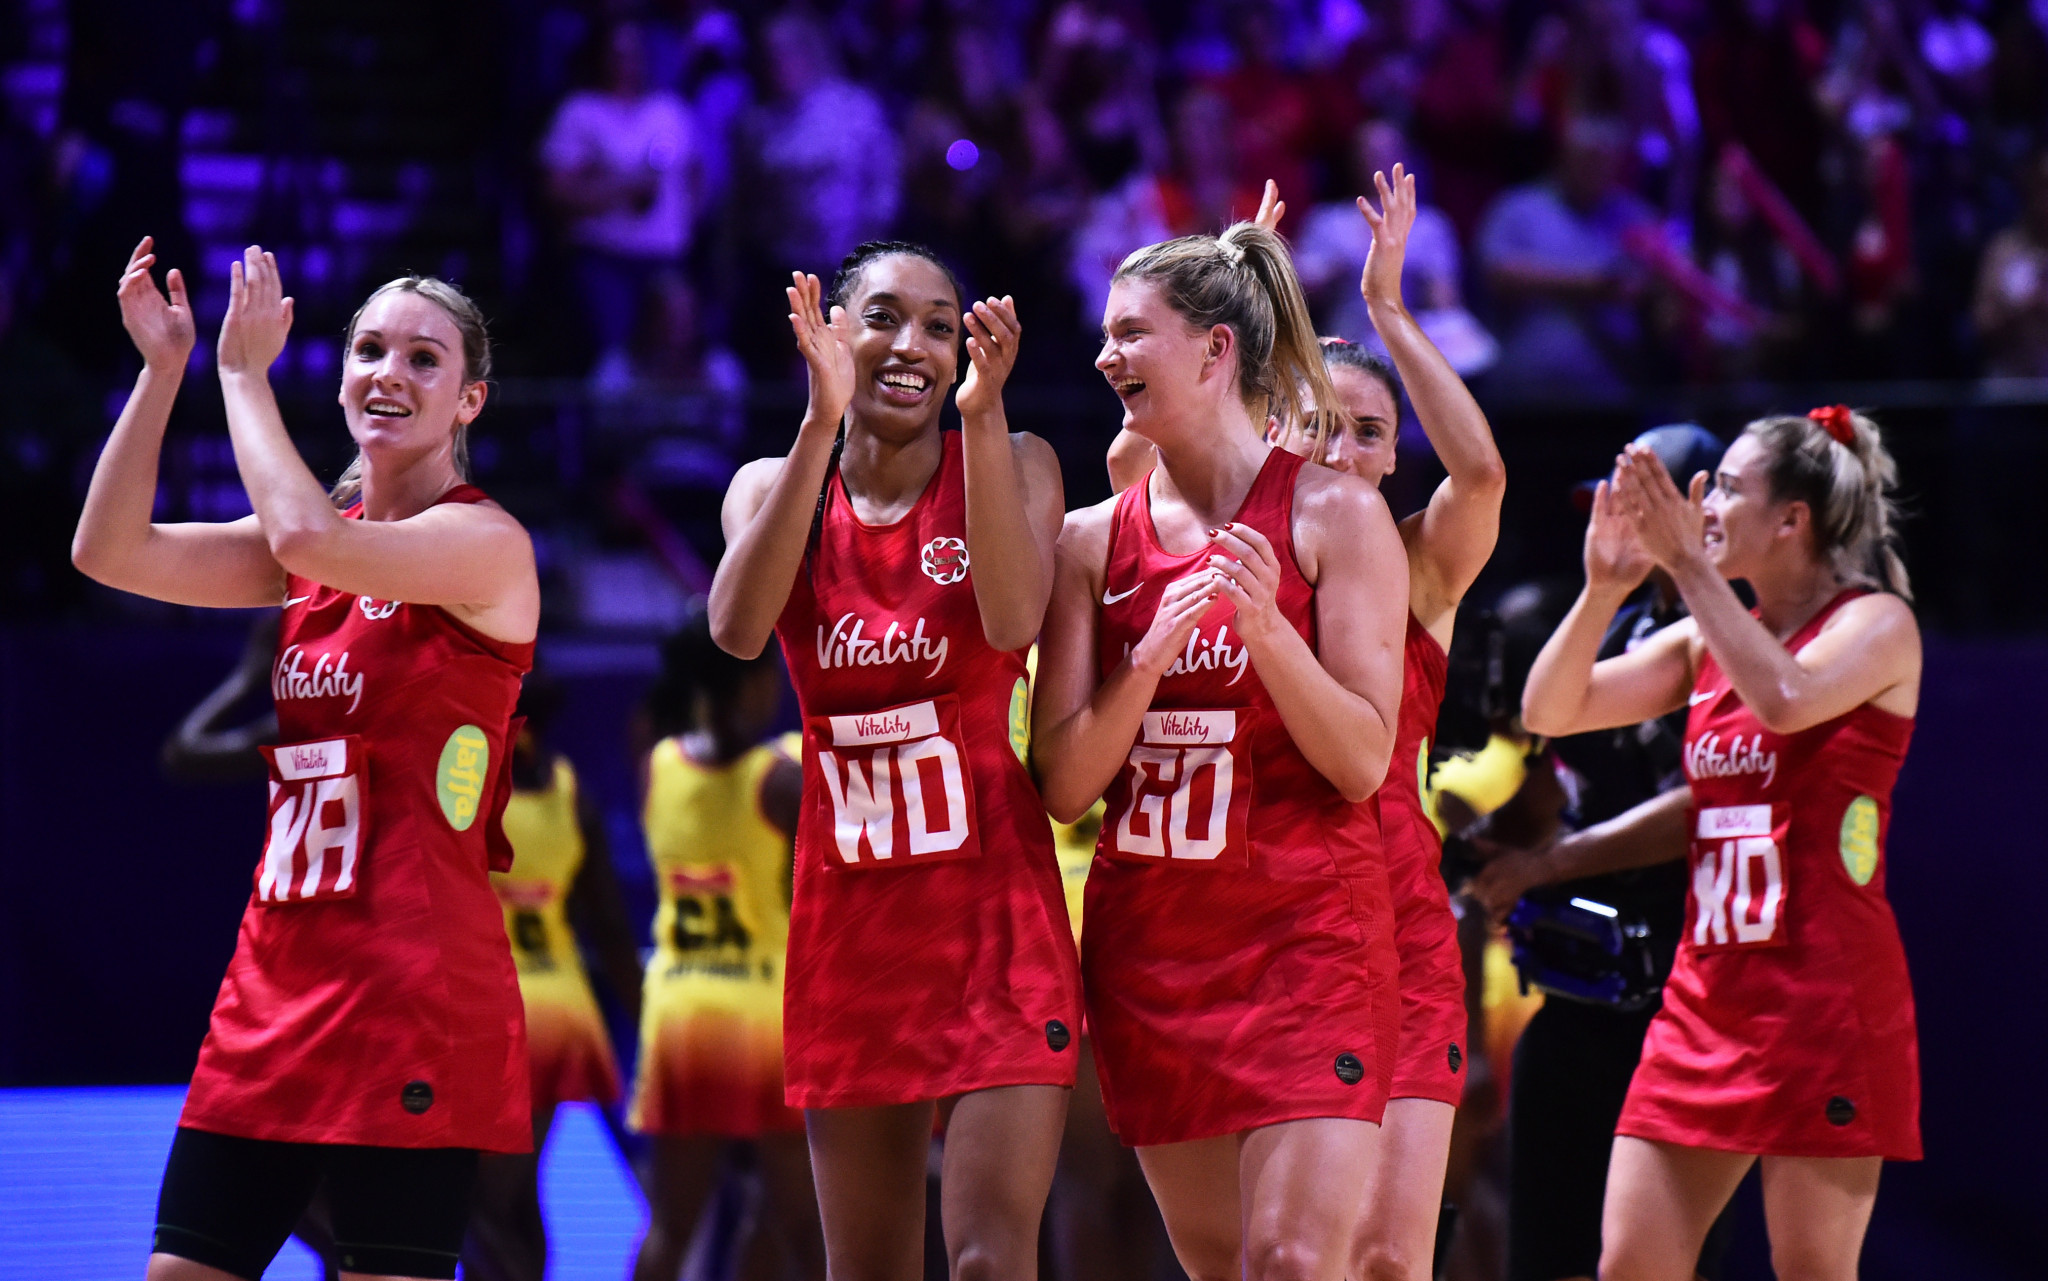 England Netball has extended its partnership with Red Bull until 2023 ©Getty Images